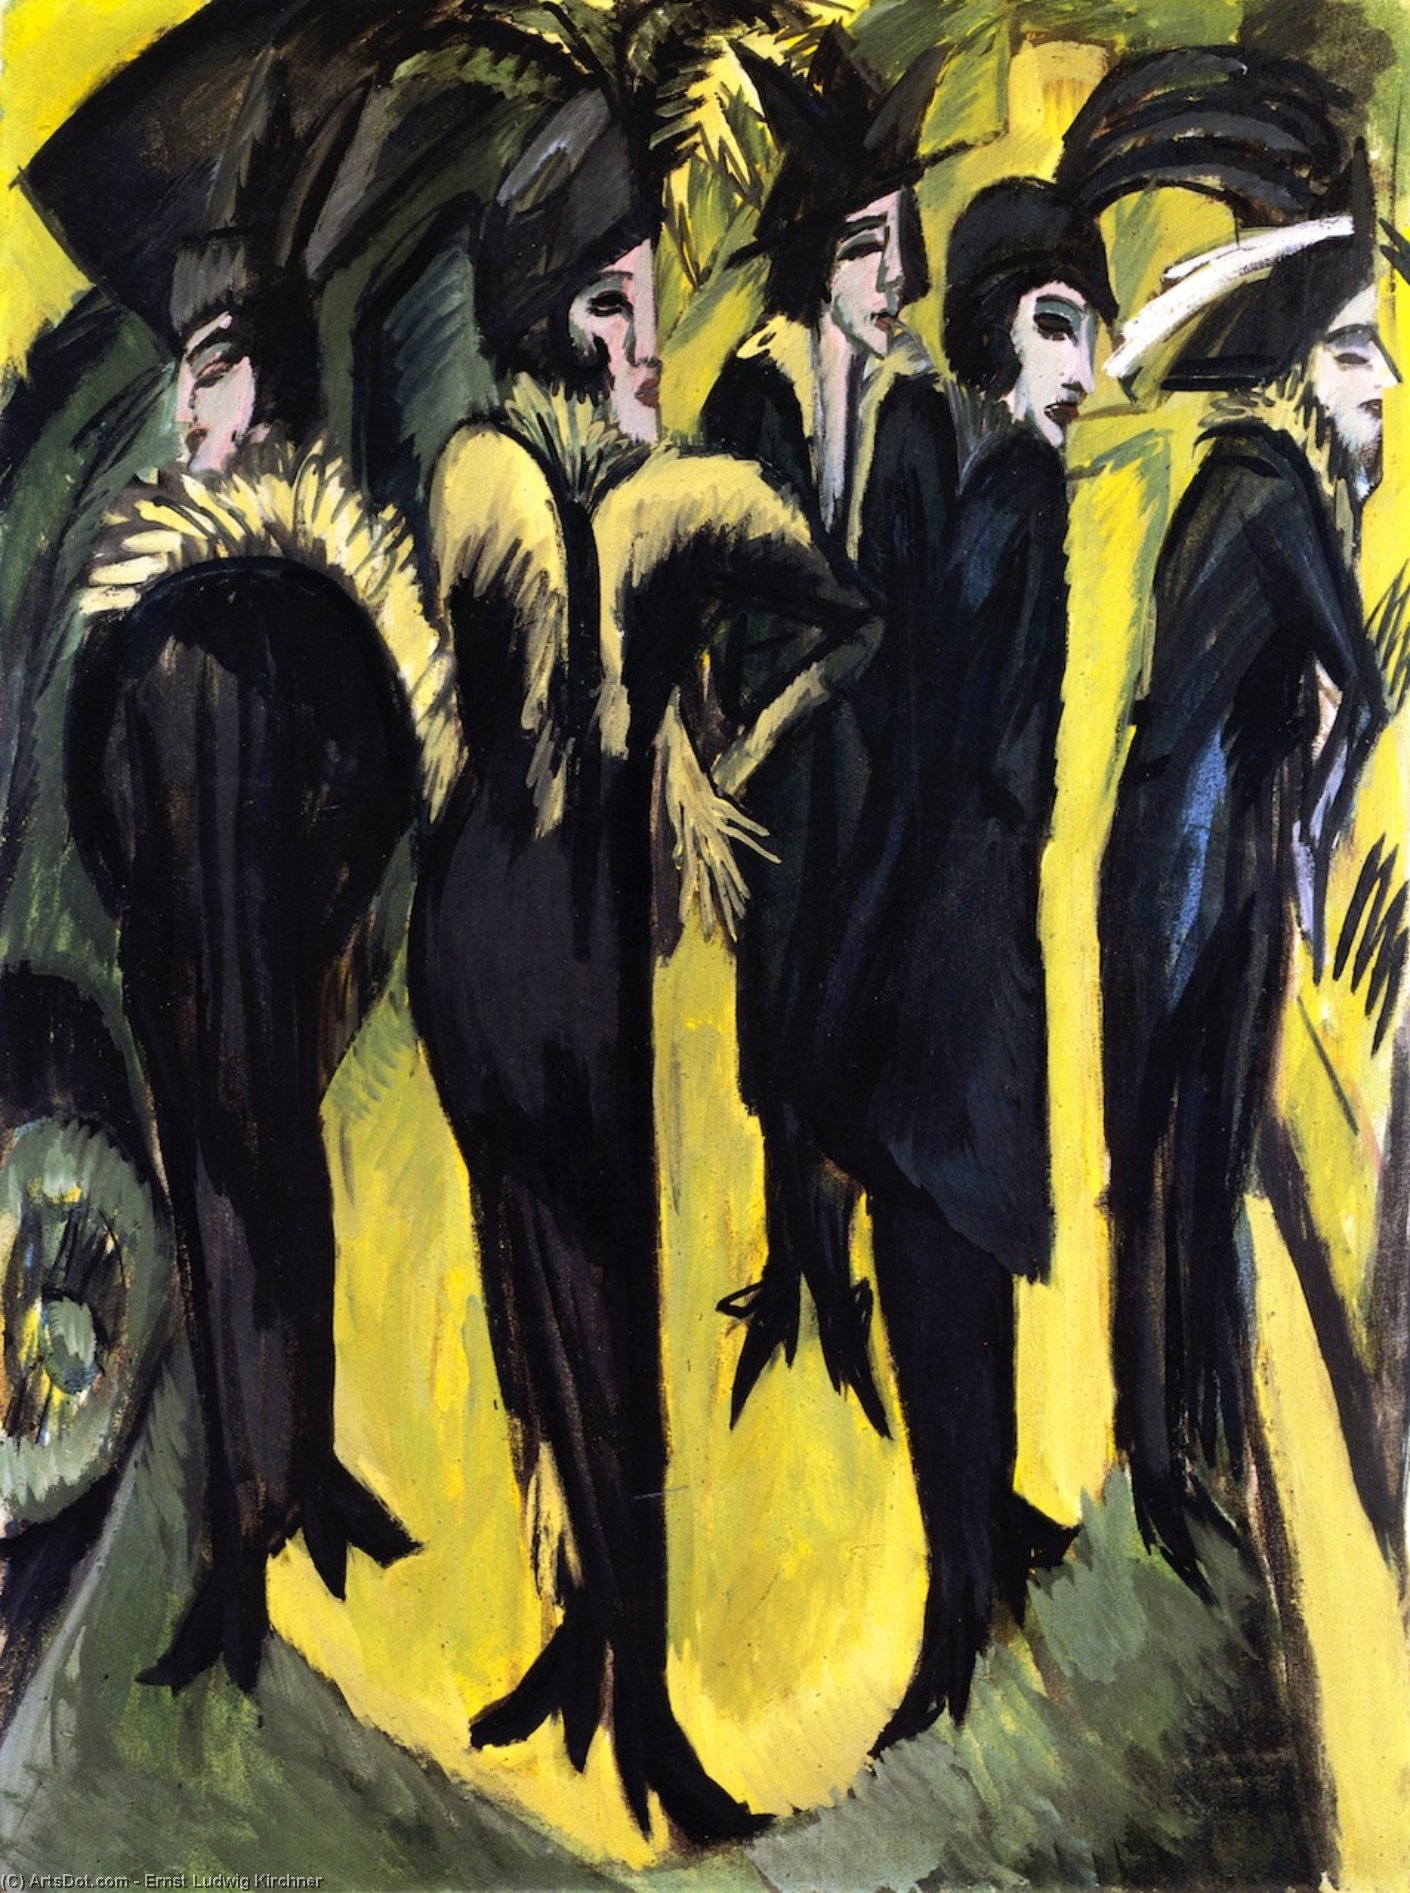 Wikioo.org - The Encyclopedia of Fine Arts - Painting, Artwork by Ernst Ludwig Kirchner - Five Women on the Street